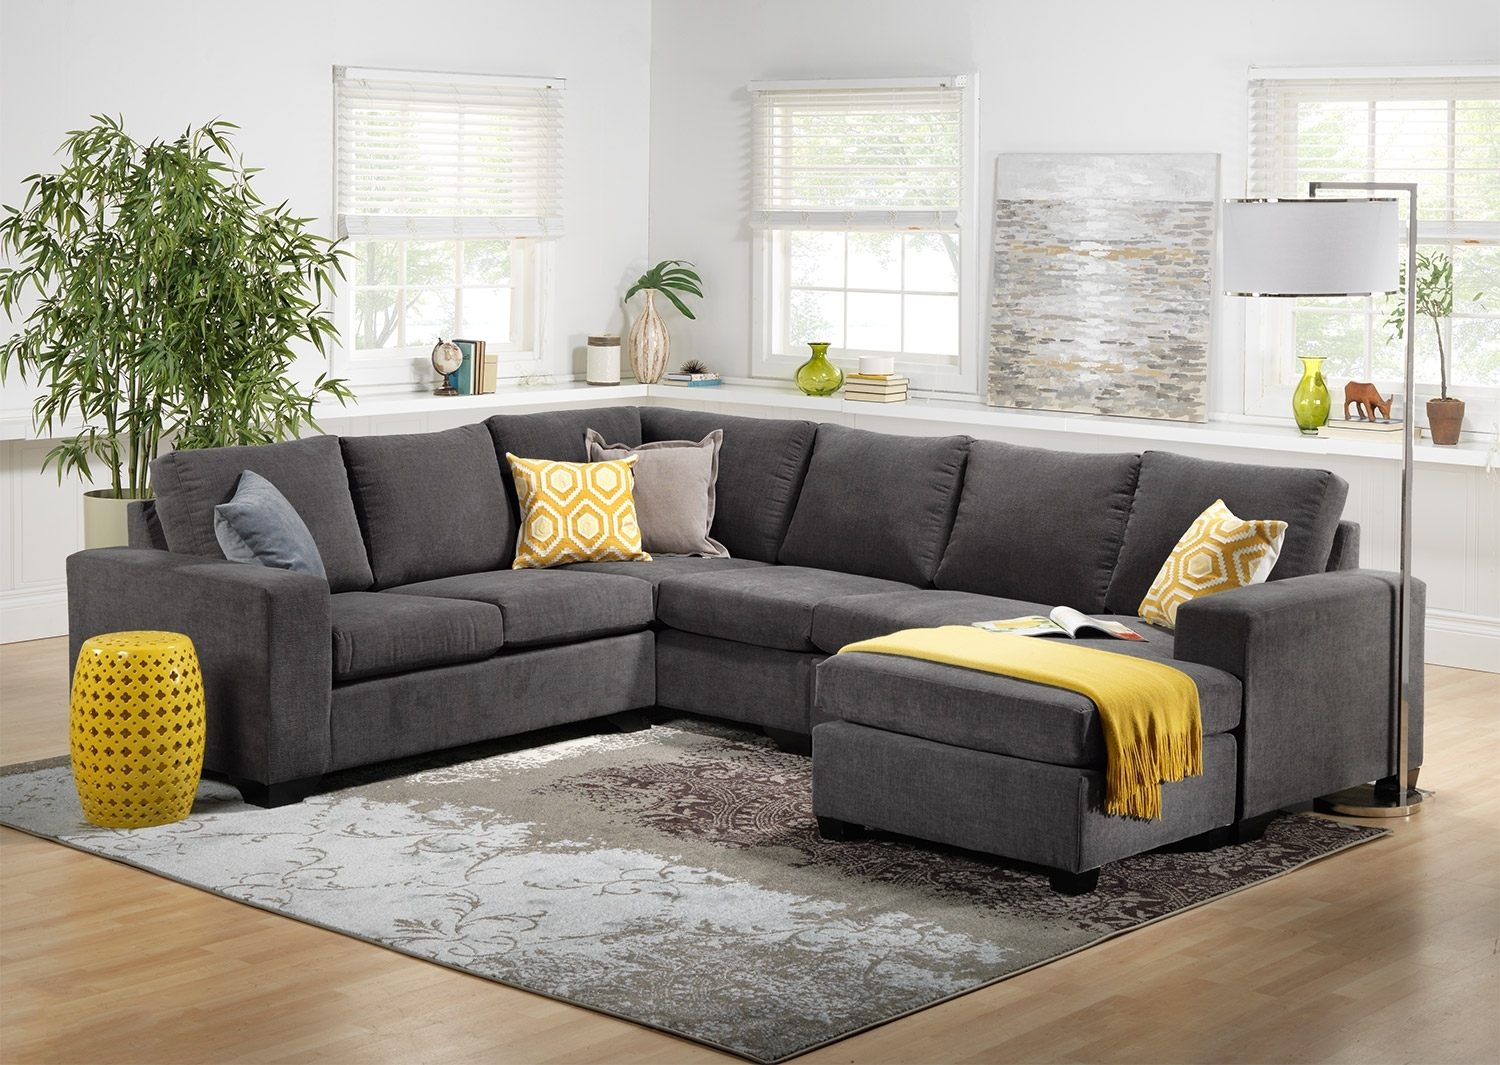 Danielle 3-Piece Sectional With Right-Facing Corner Wedge - Grey within Kitchener Sectional Sofas (Image 3 of 10)